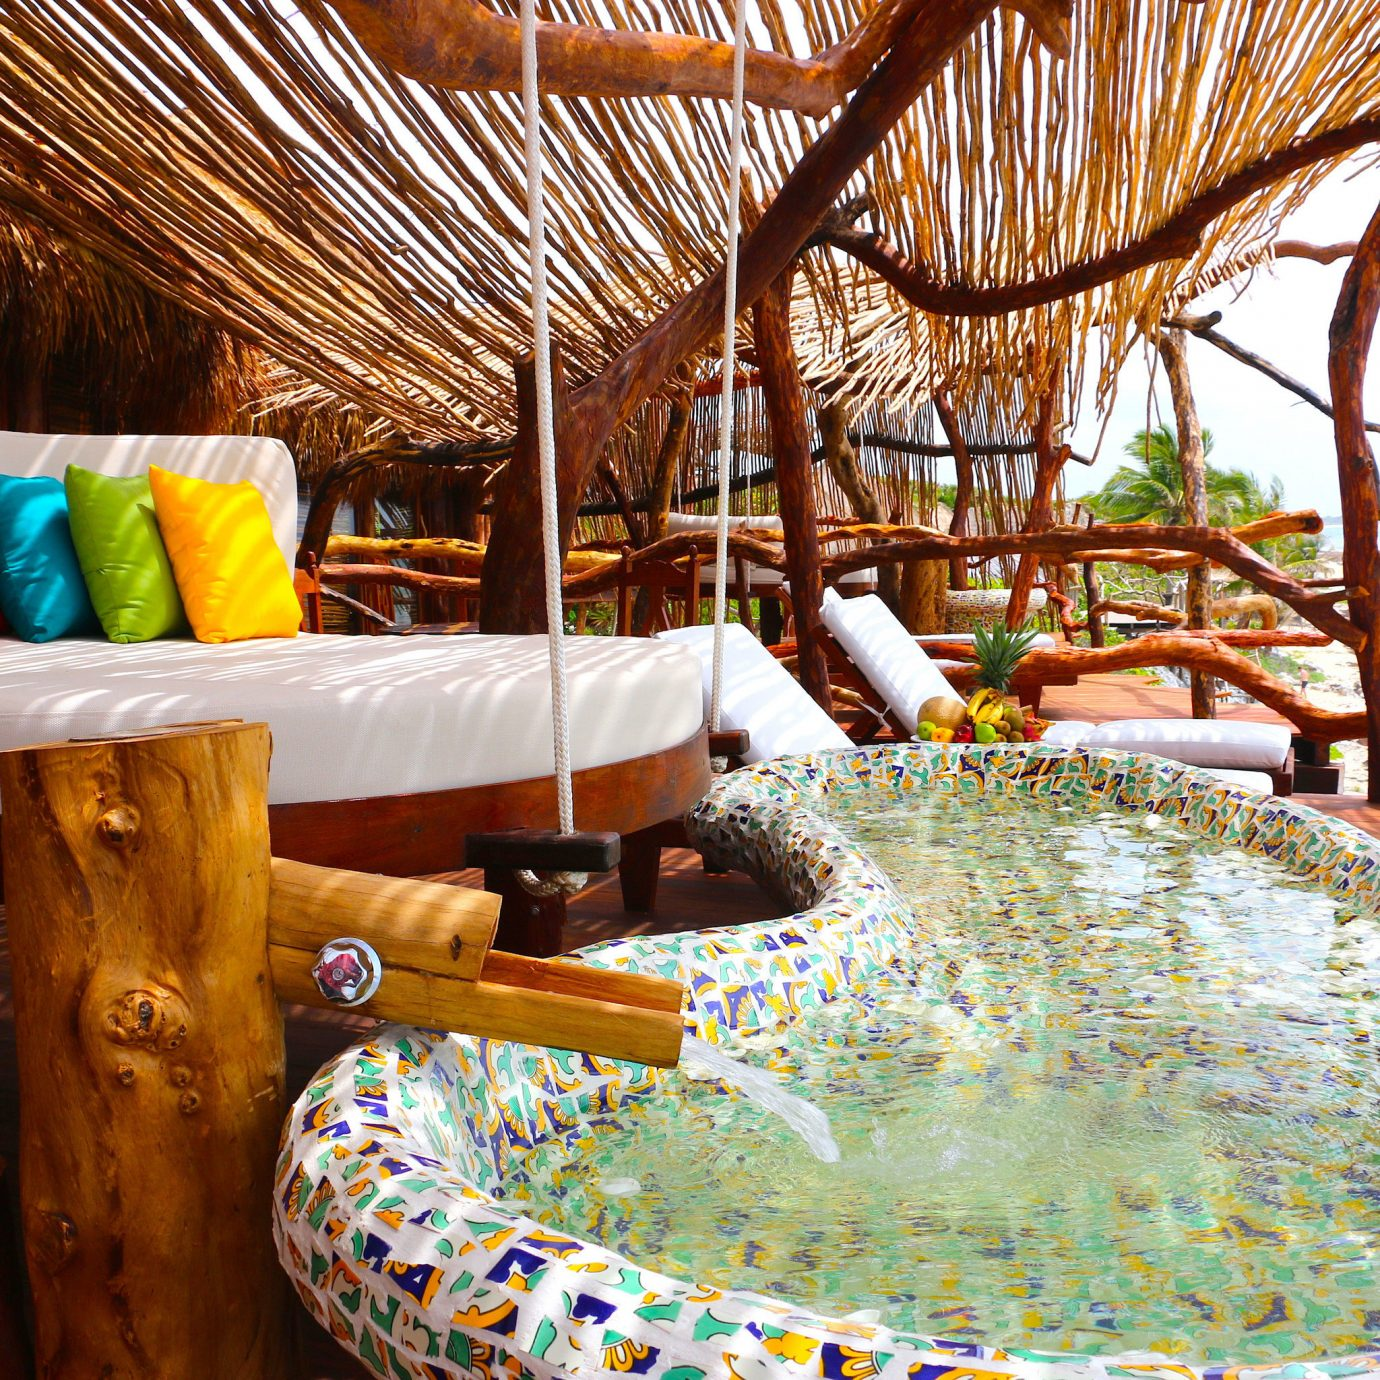 Bed and water at Azulik in Tulum